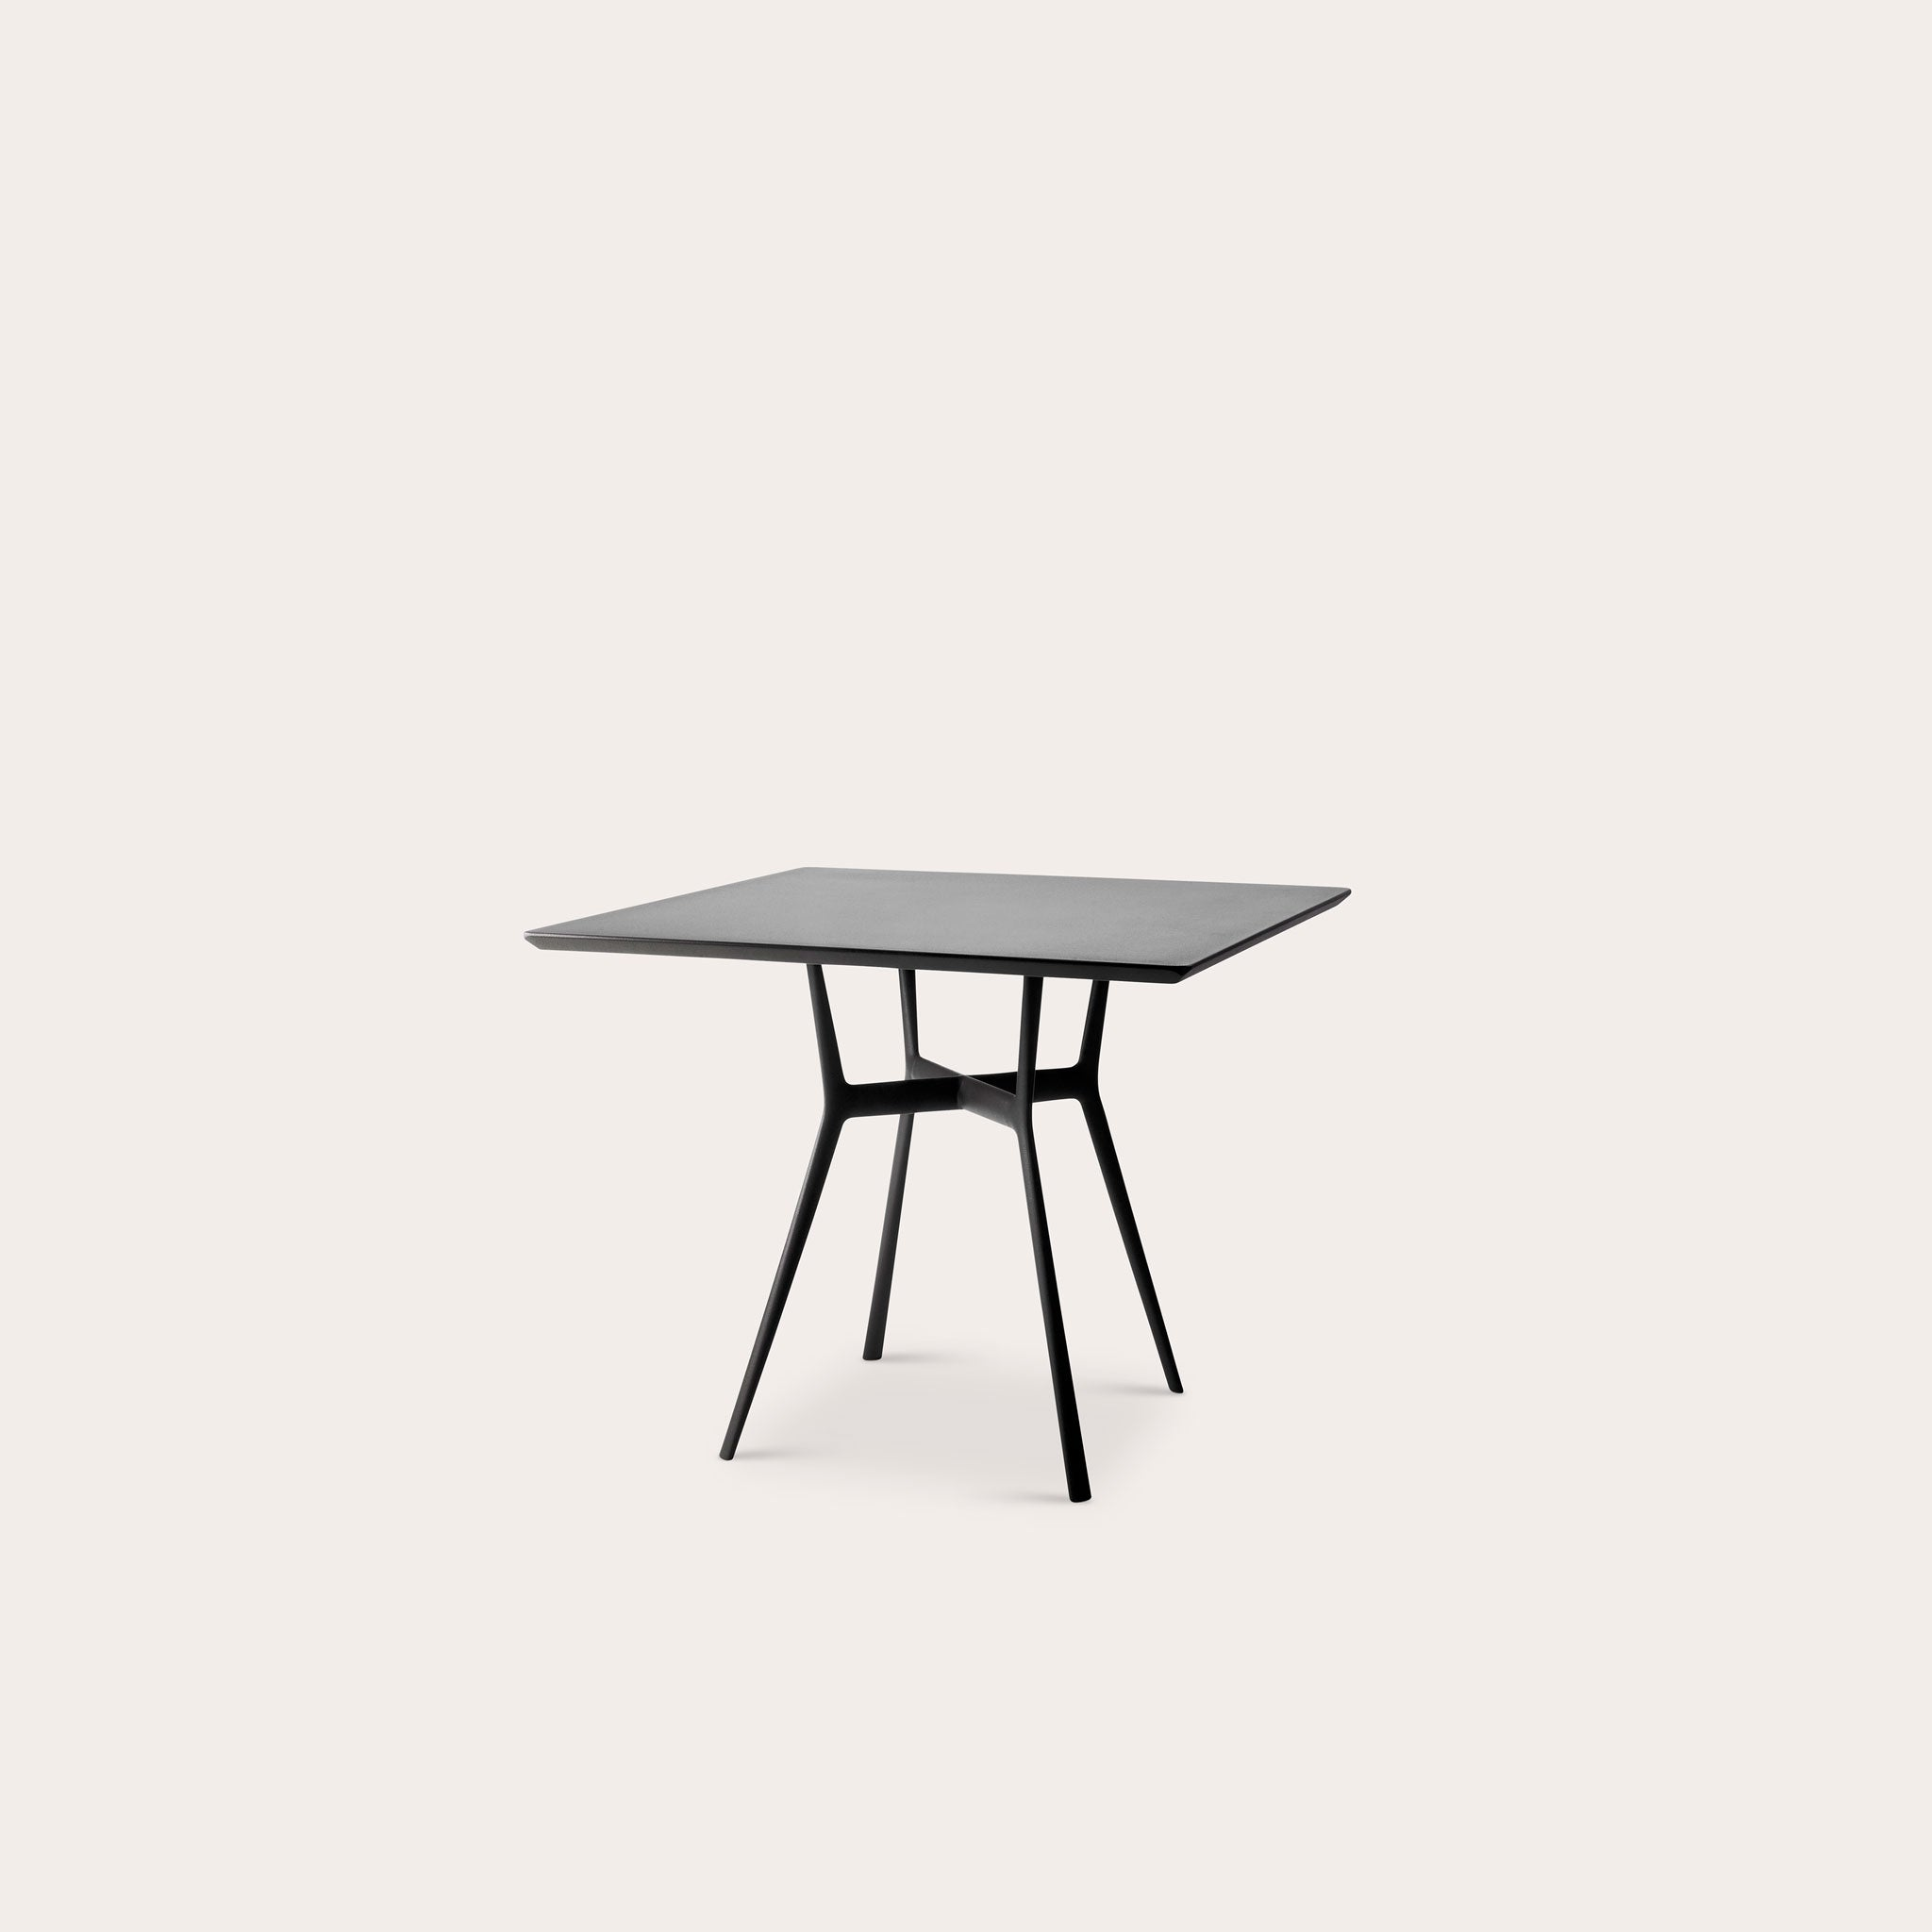 BRANCH Bistro Table Square Outdoor Altherr Lievore Molina Designer Furniture Sku: 007-200-11919